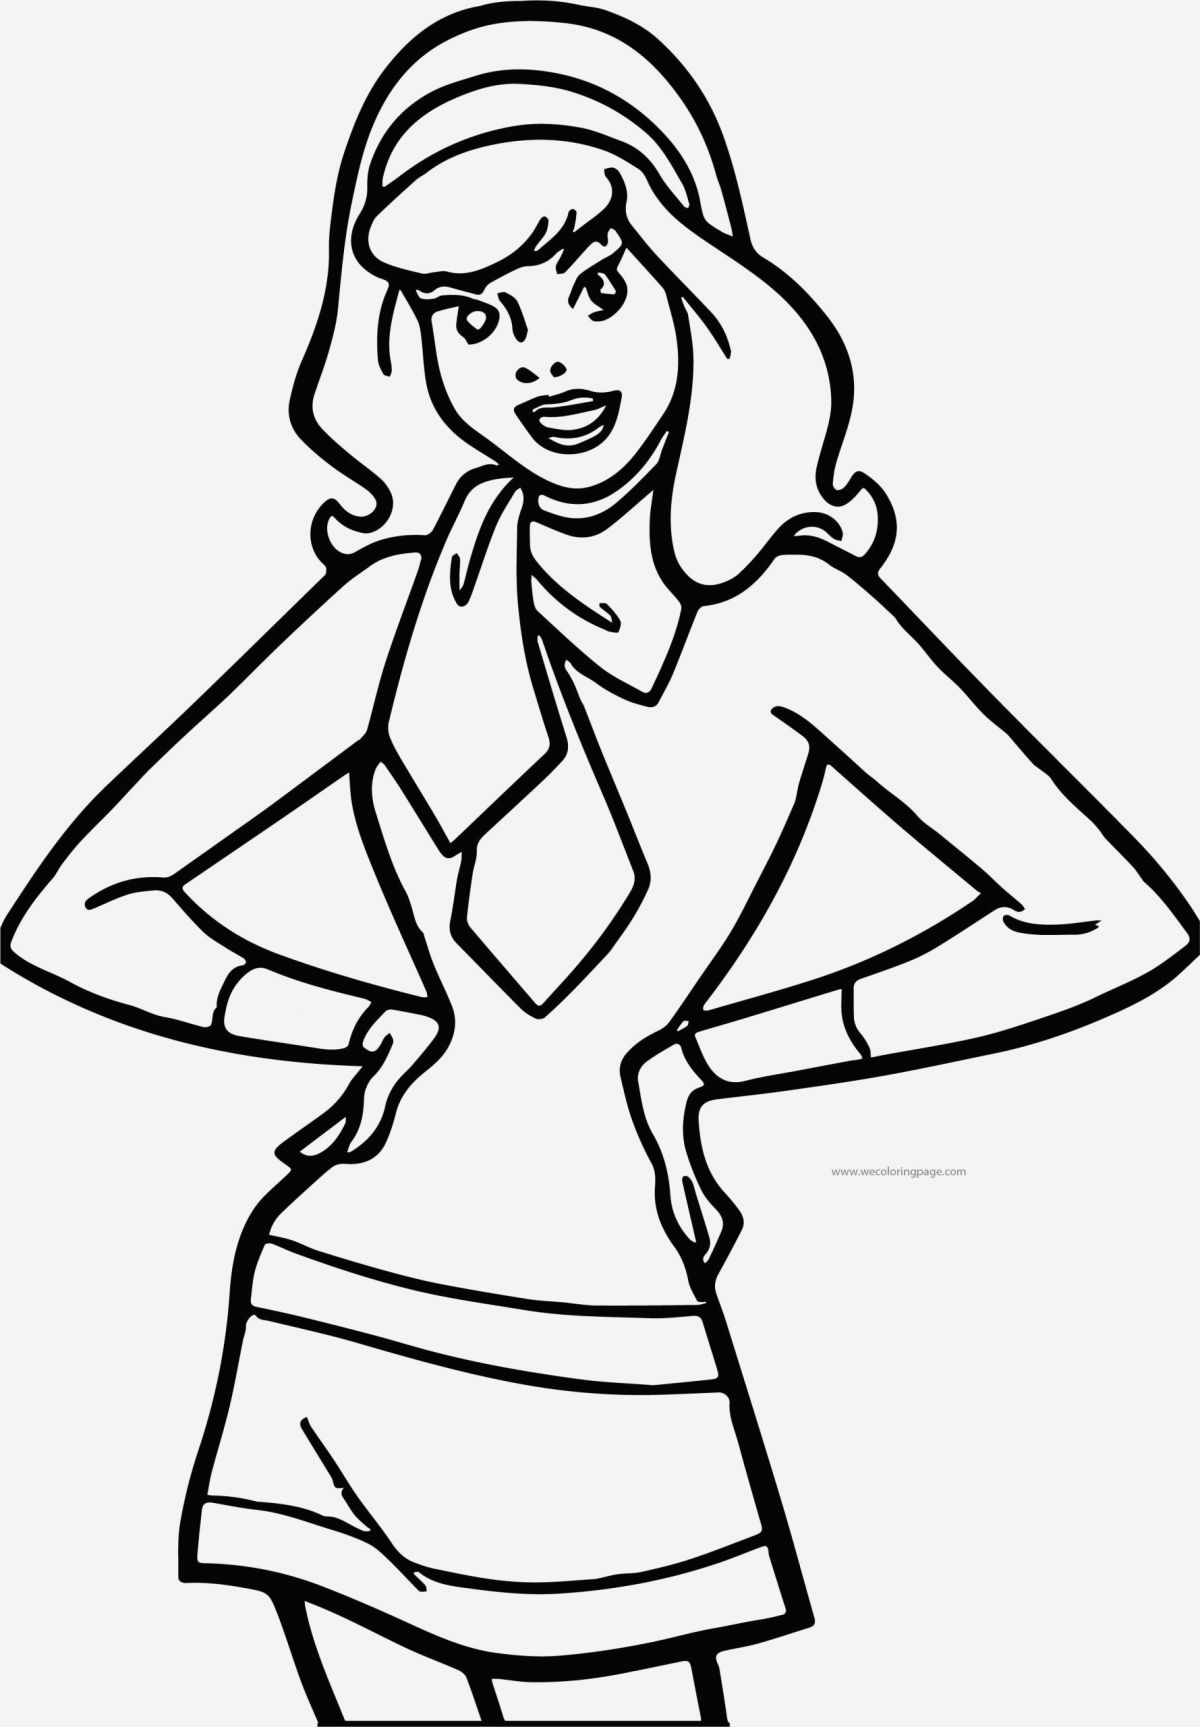 Coloriage Scooby Doo Awesome Pages Coloring Pages Coloring Excelent Scooby Doo Sheets